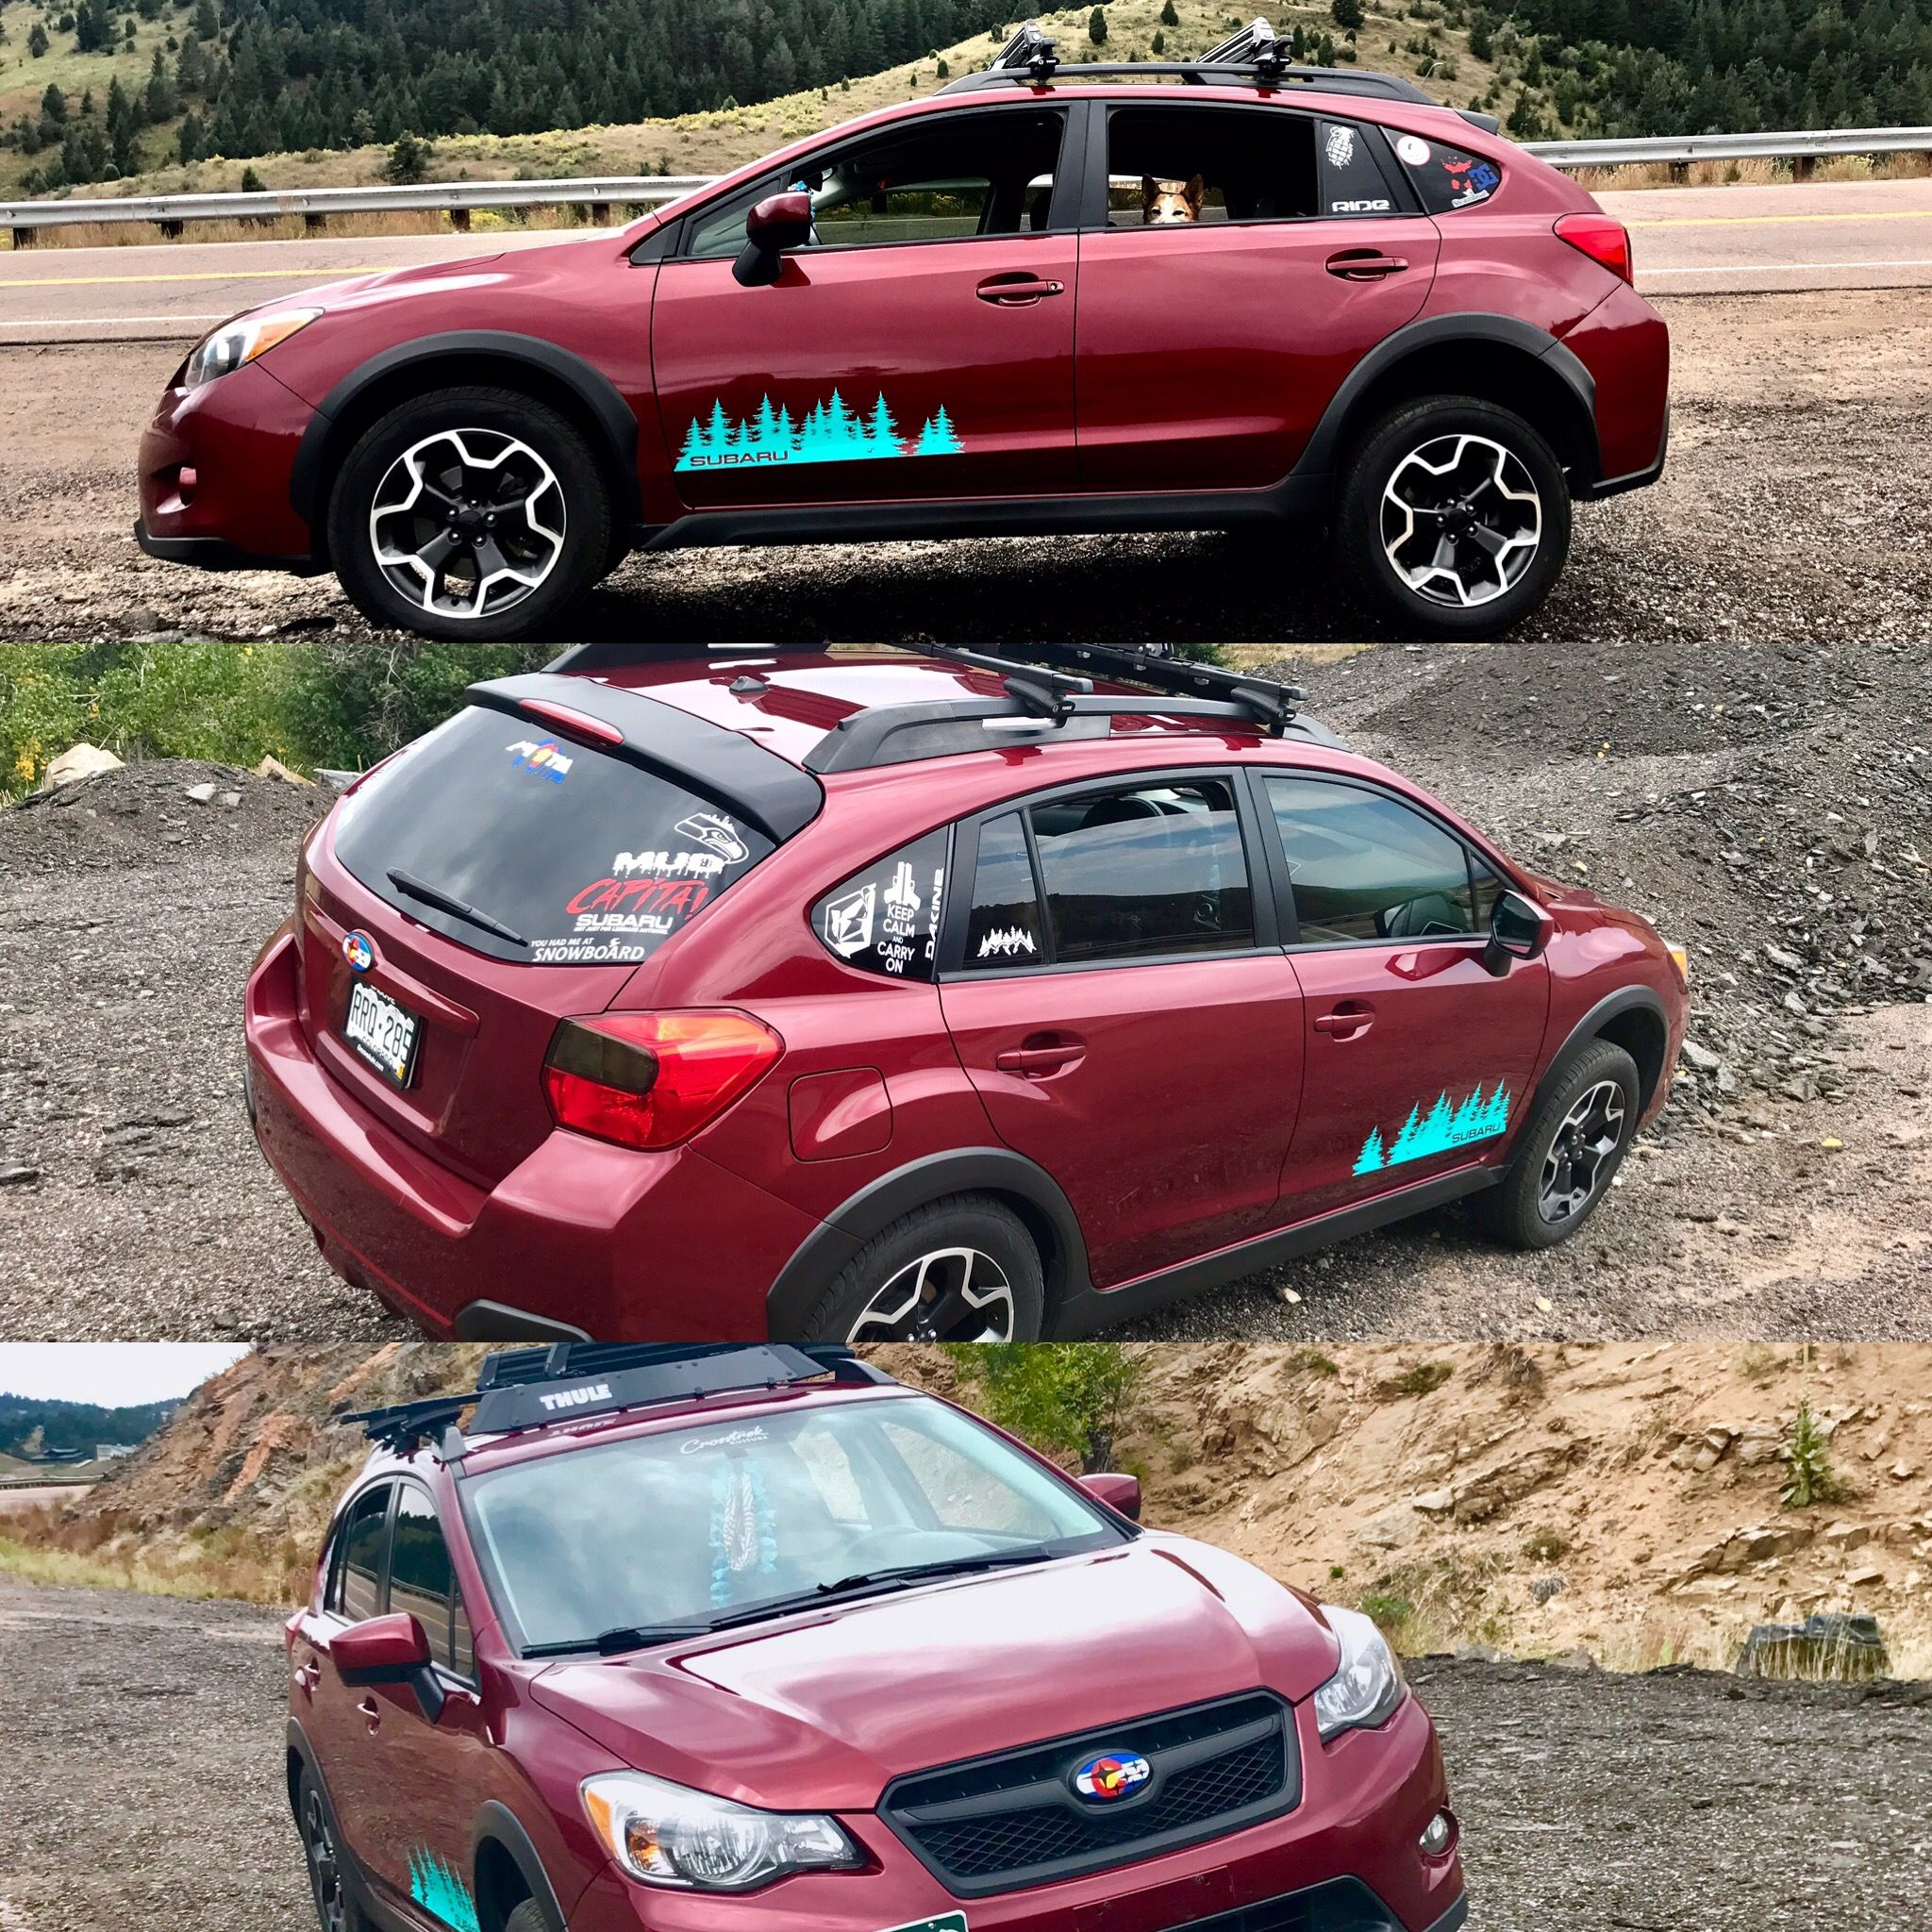 A Little Goes A Long Way Got The Chrome Delete Done On The Crosstrek Thanks To Lucid Wraps Blacked Out Grille And Spoiler Subaru Crosstrek Subaru Dream Cars